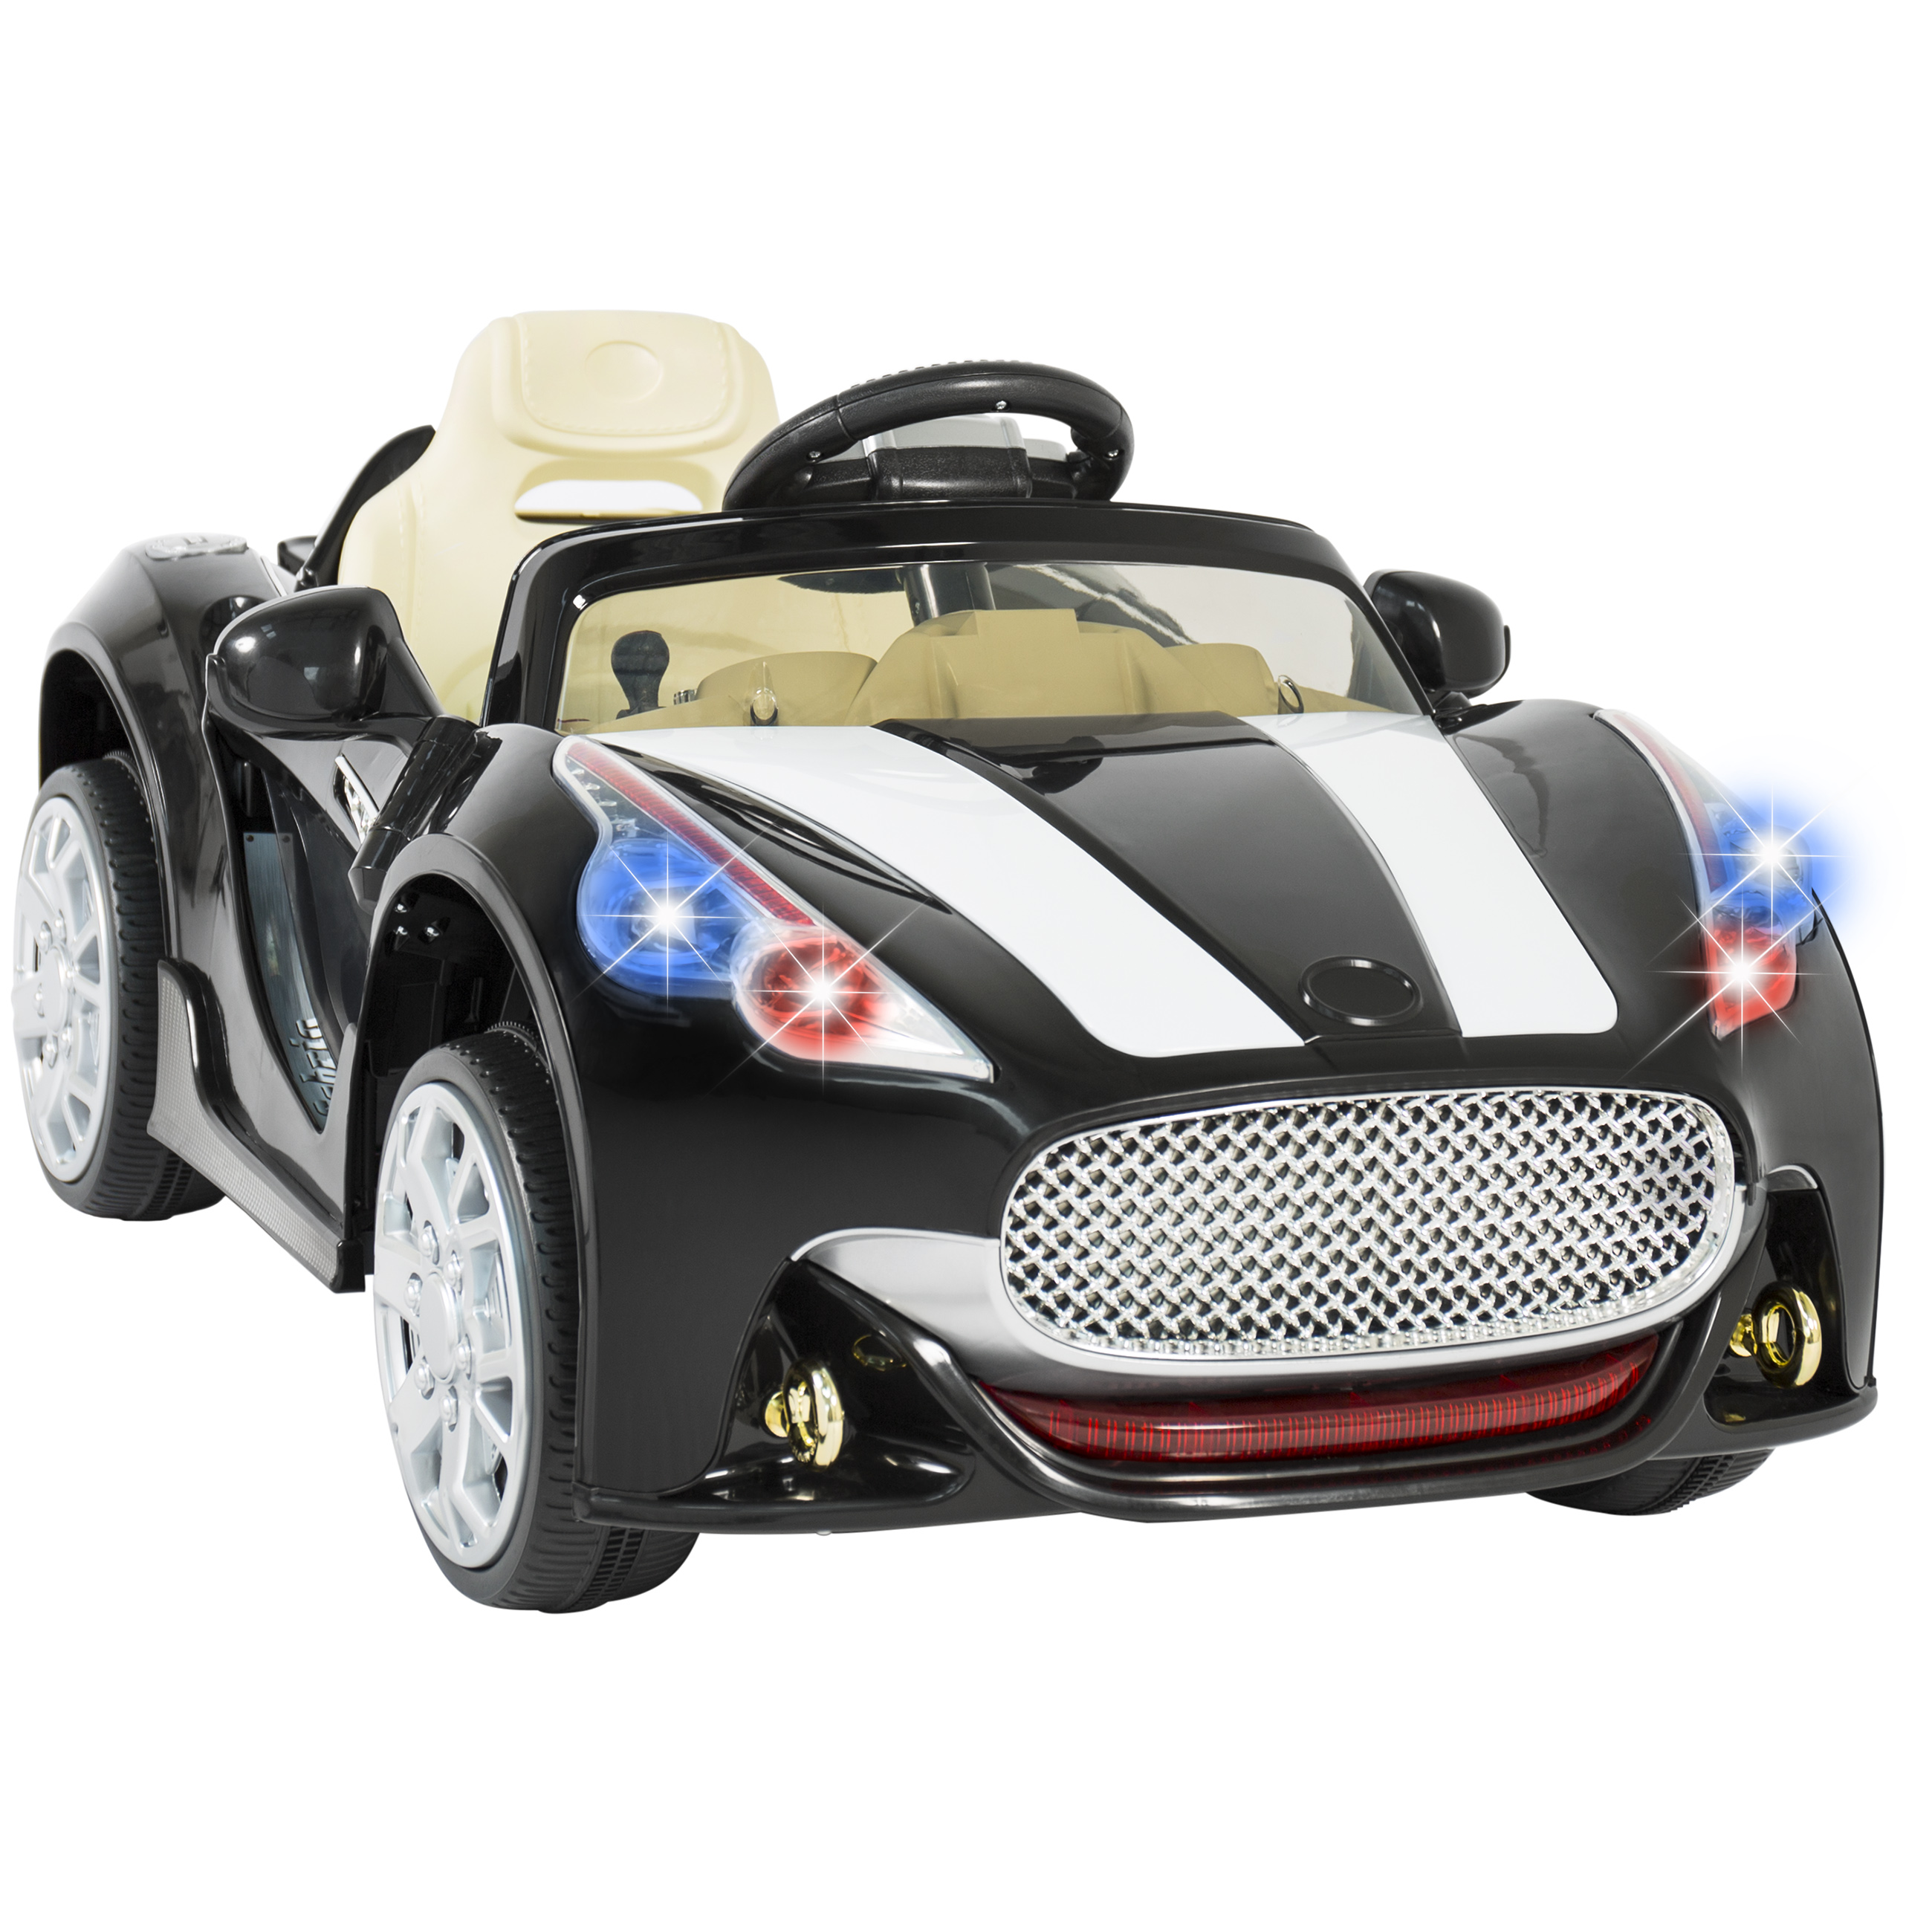 Best Choice Products 12V Ride on Car Kids RC Remote Control Electric Battery Power W/ Radio & MP3 (Black)